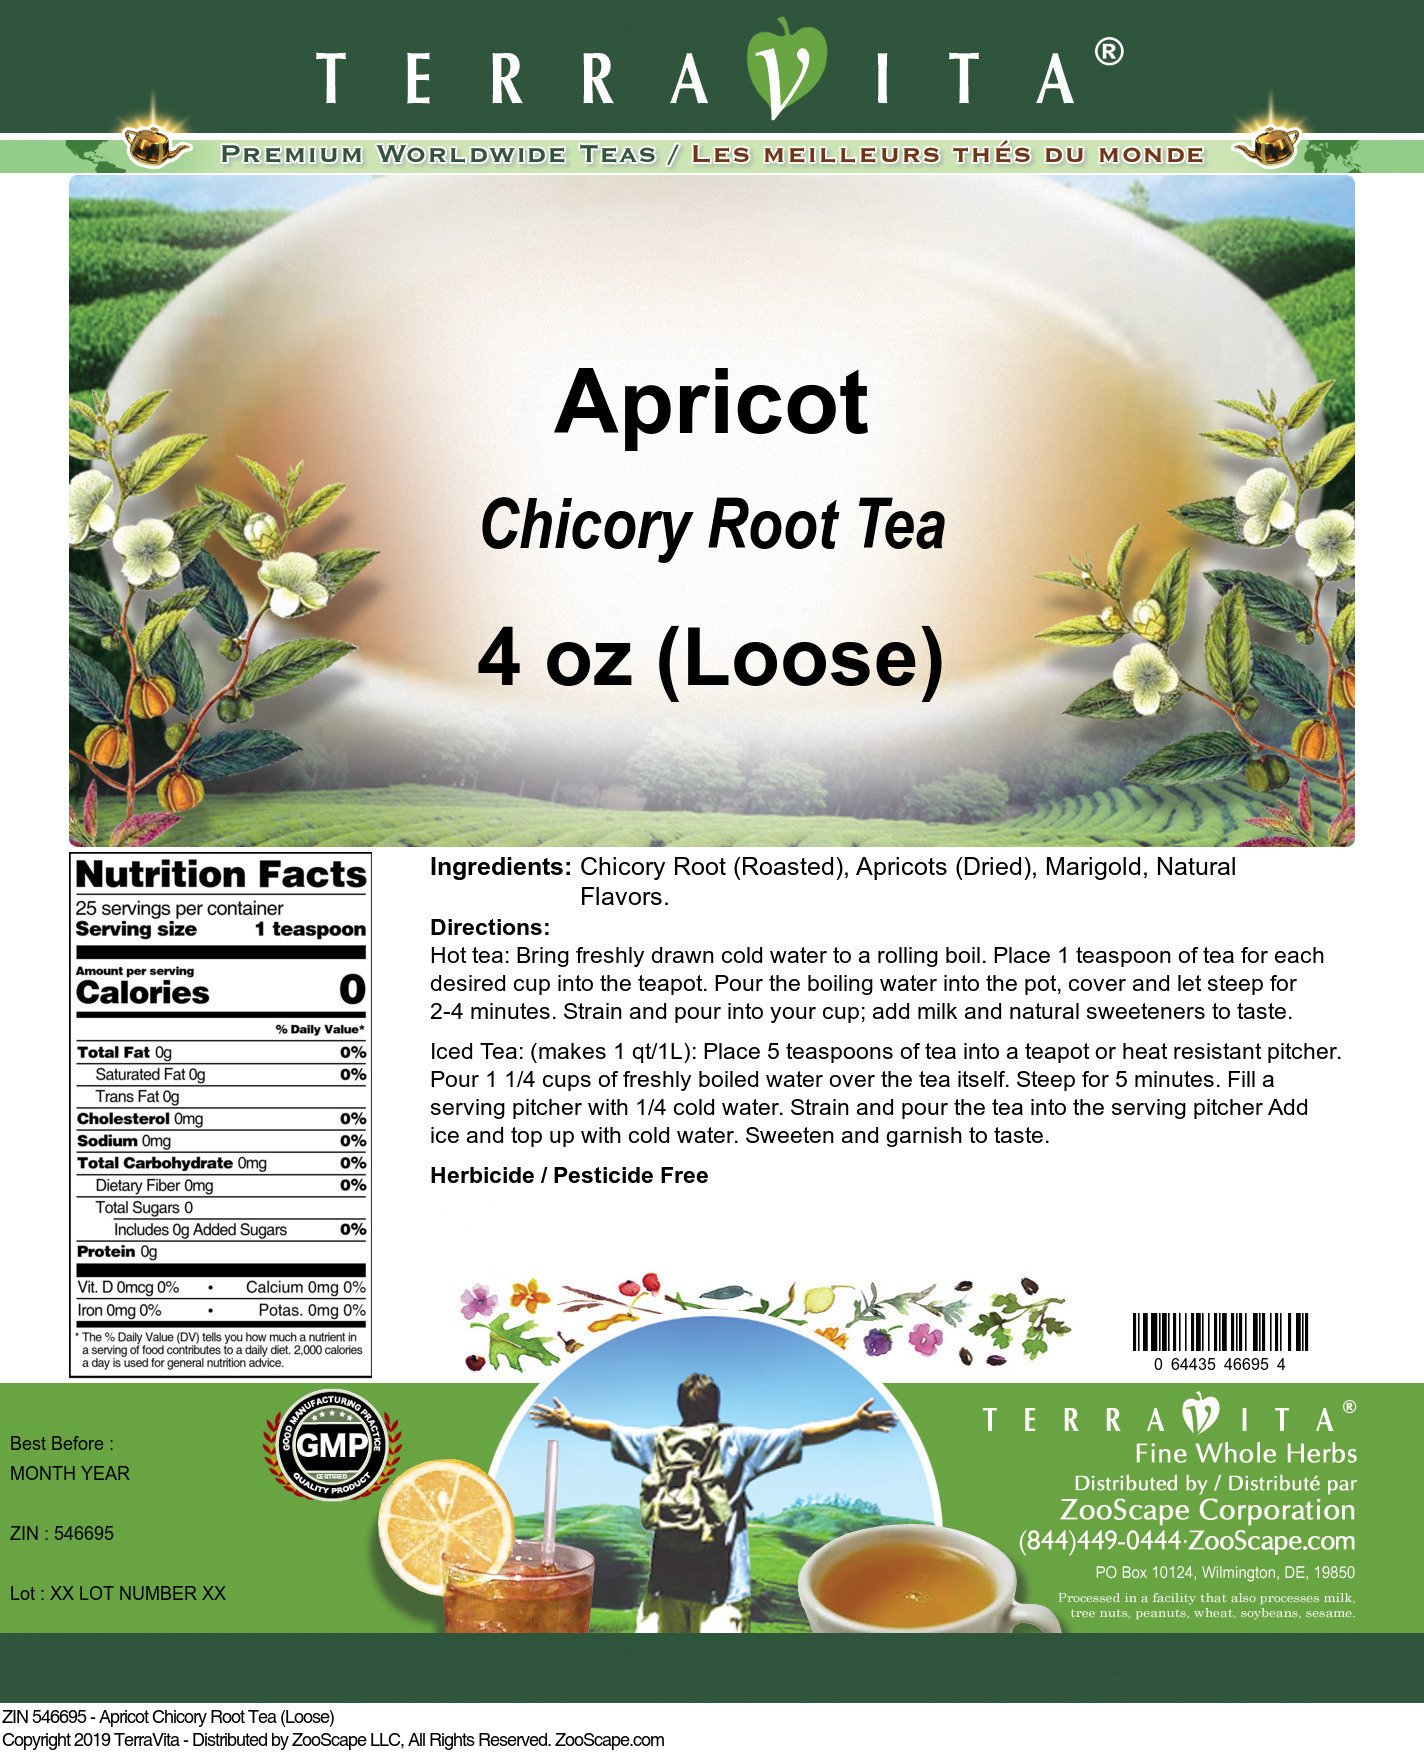 Apricot Chicory Root Tea (Loose)